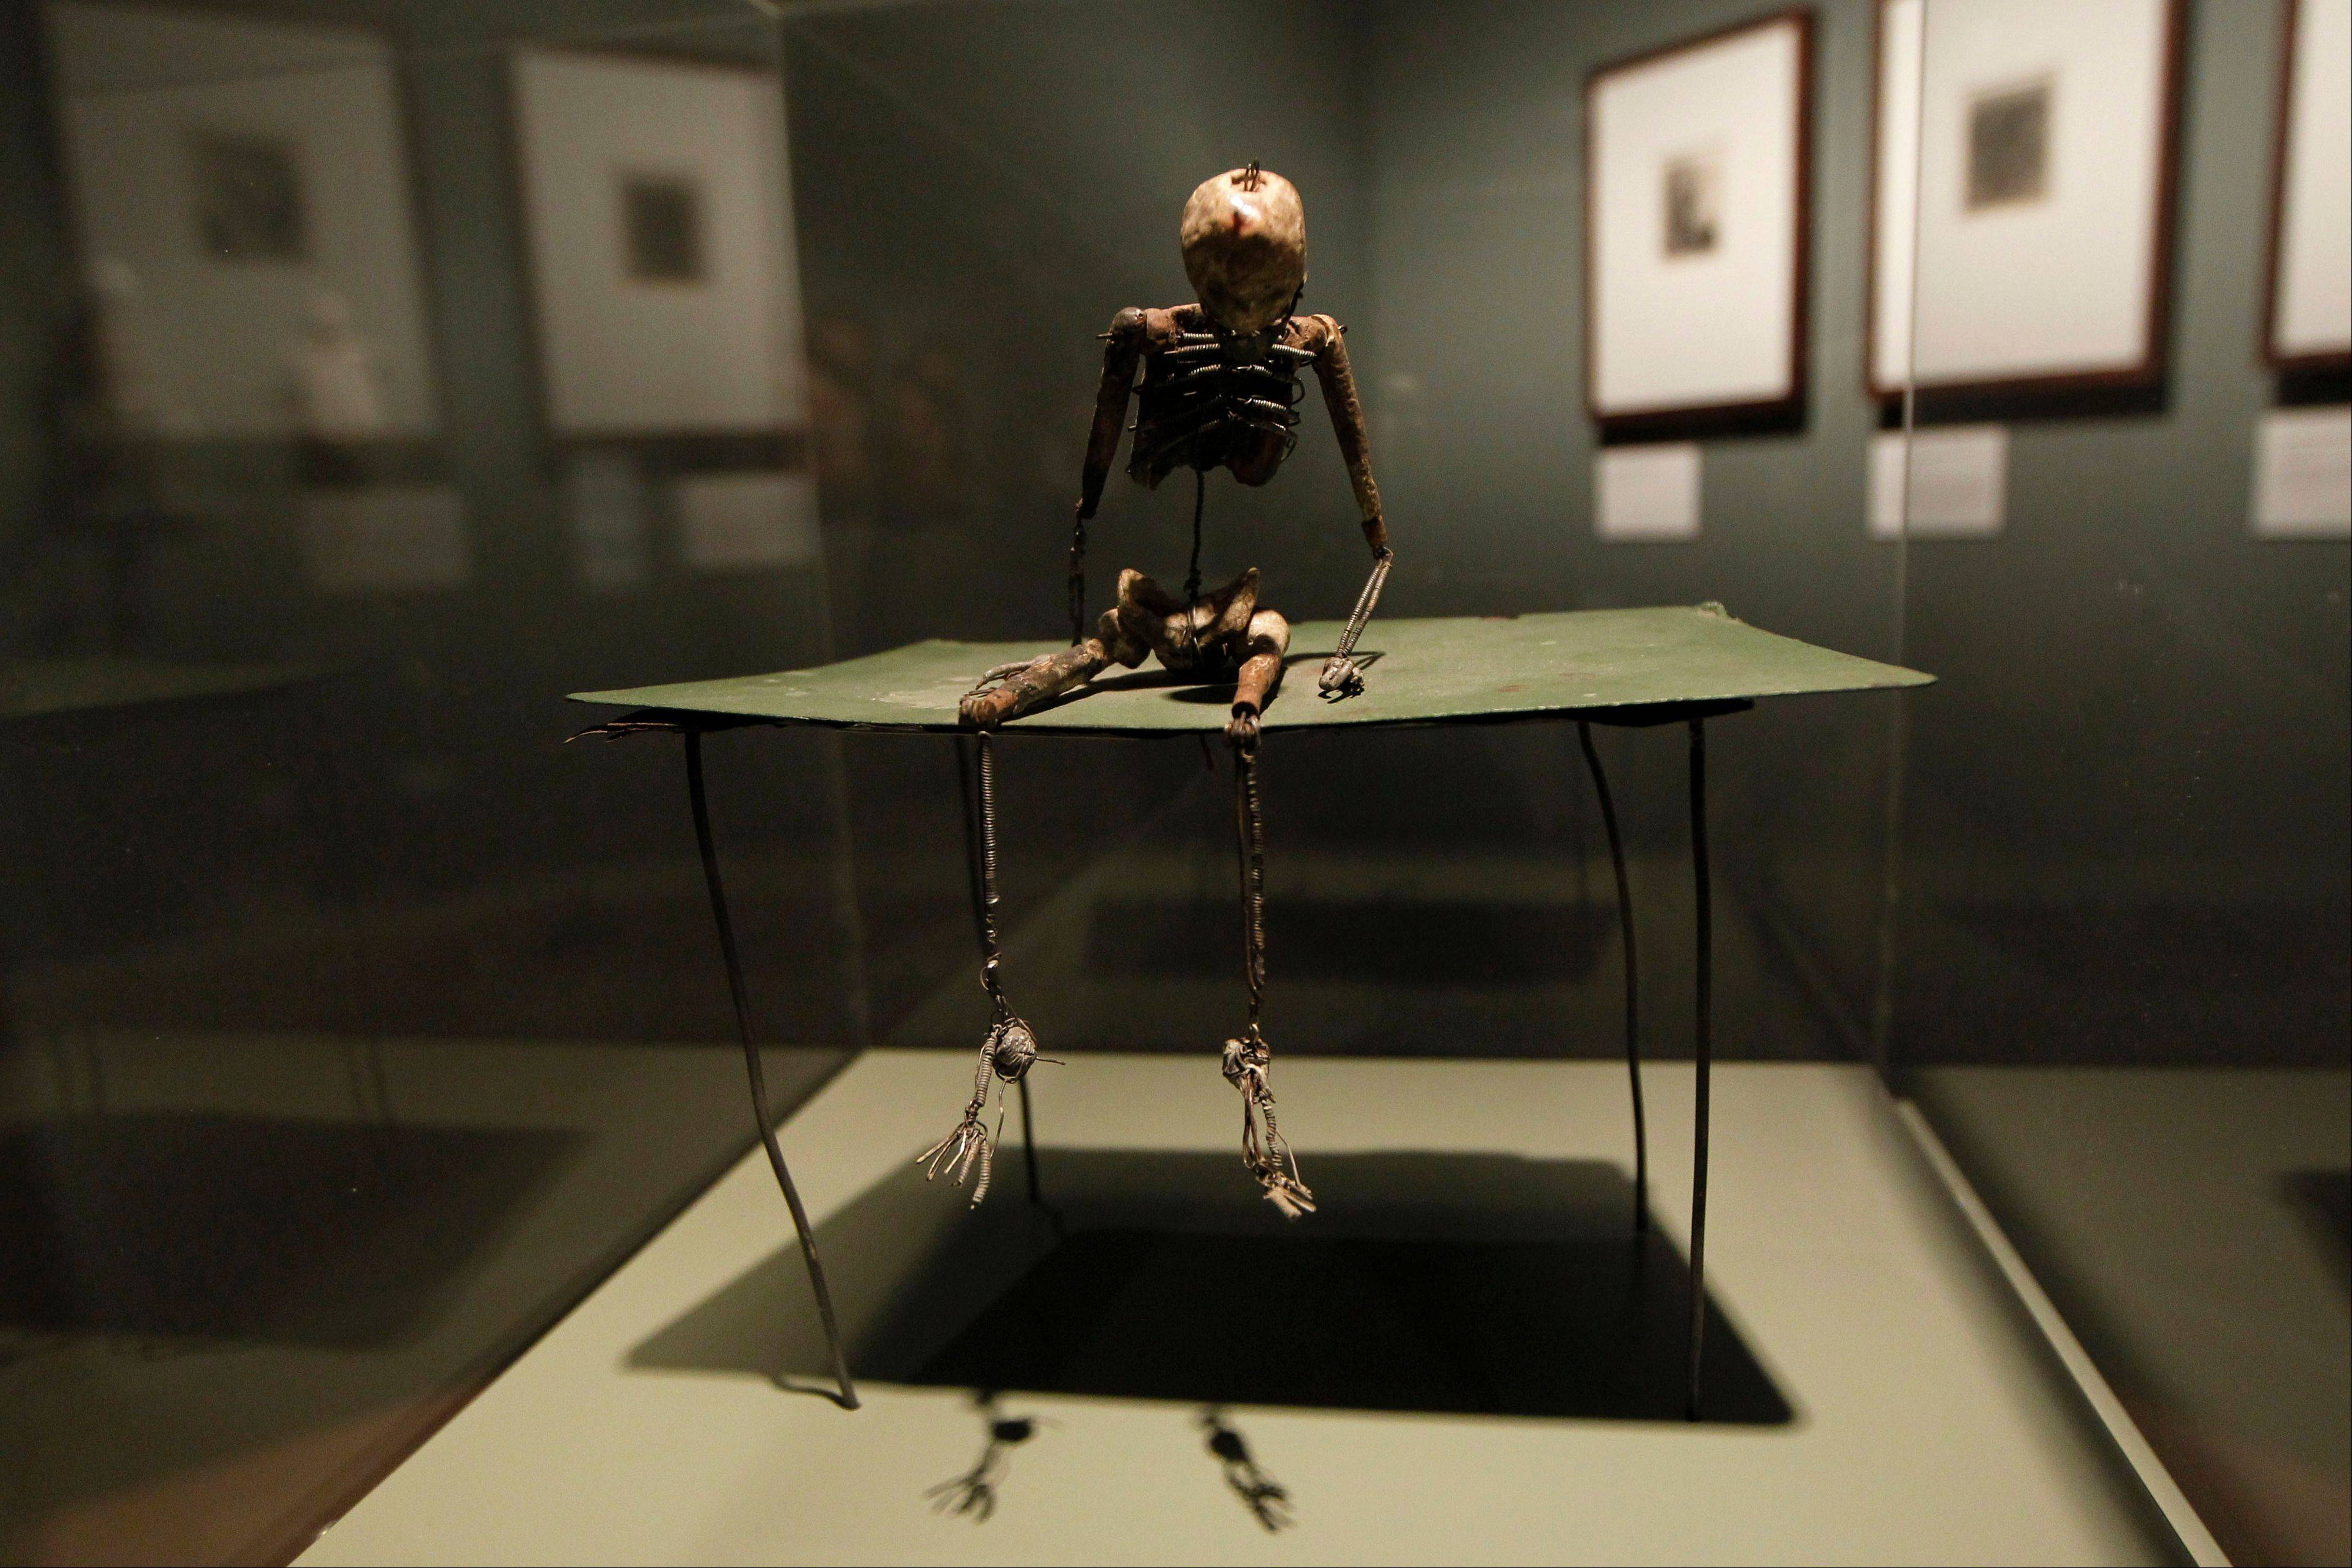 A sculpture 'Gentleman on Green Table' by U.S. artist June Leaf is seen on display at an exhibition 'Death: The Richard Harris Collection' at the Wellcome Collection gallery in London.